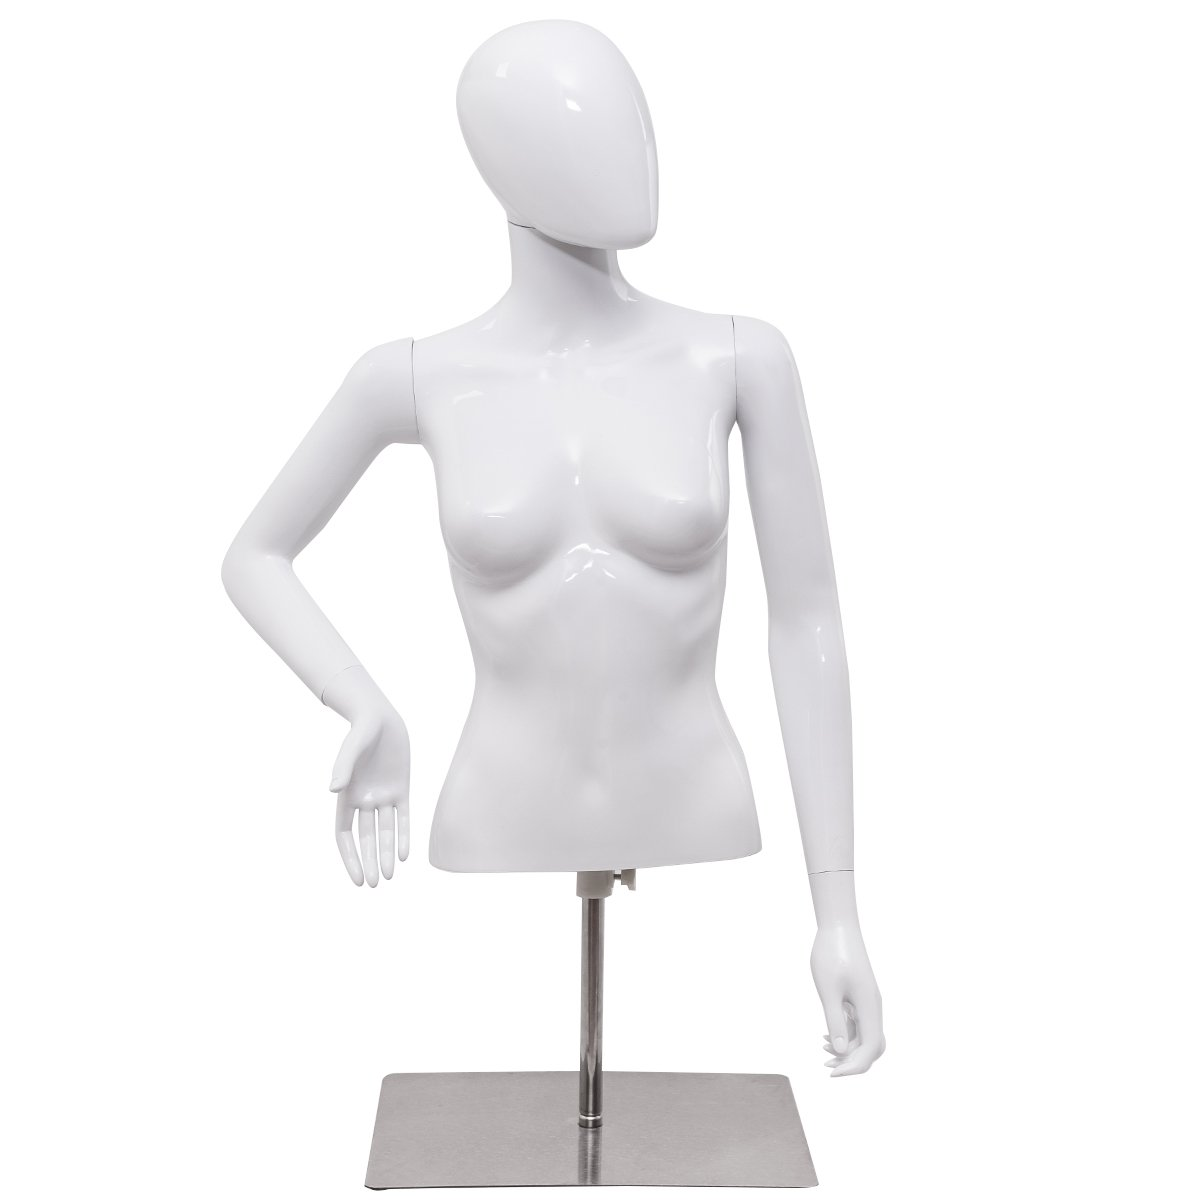 Giantex Male Mannequin Torso Head Turn Dress Form Display Adjust Height with Arms, Bright White HW56032